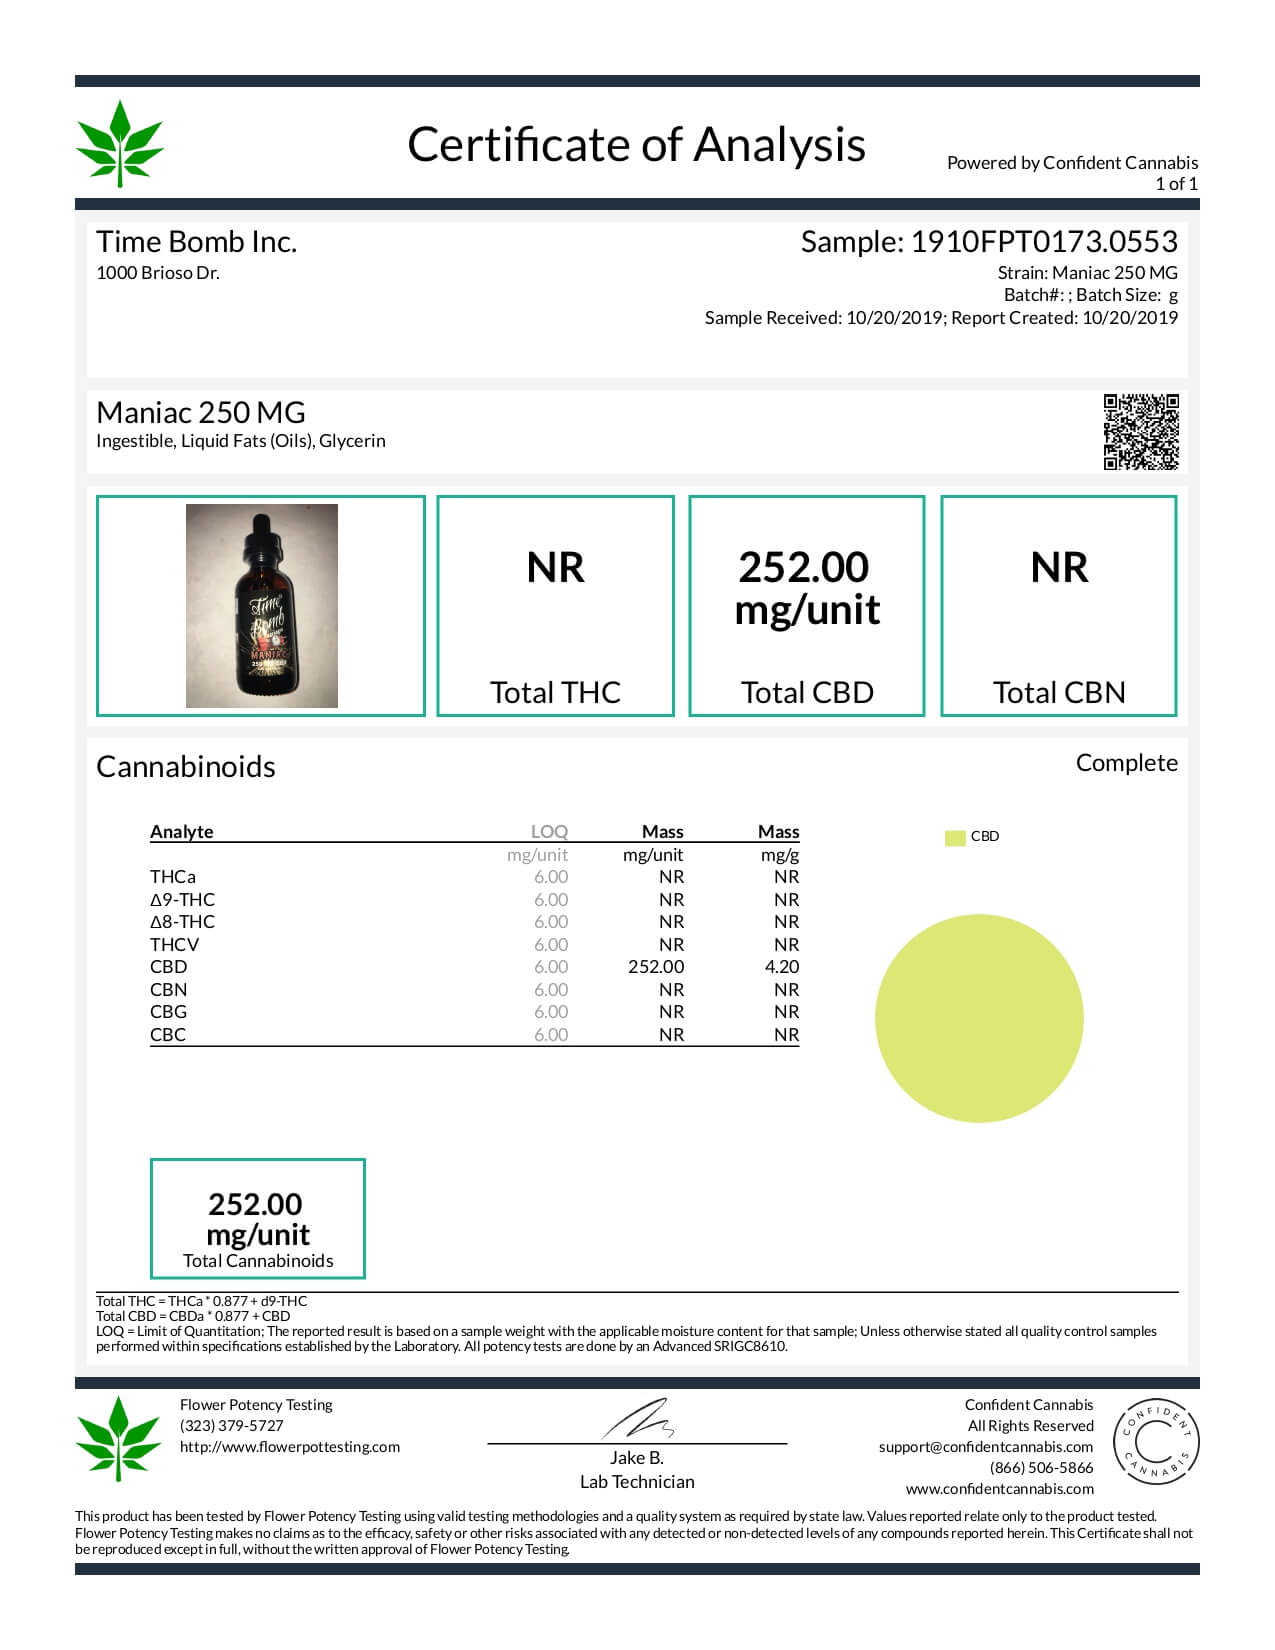 Time Bomb Extracts CBD Vape Juice Maniac 250mg Lab Report